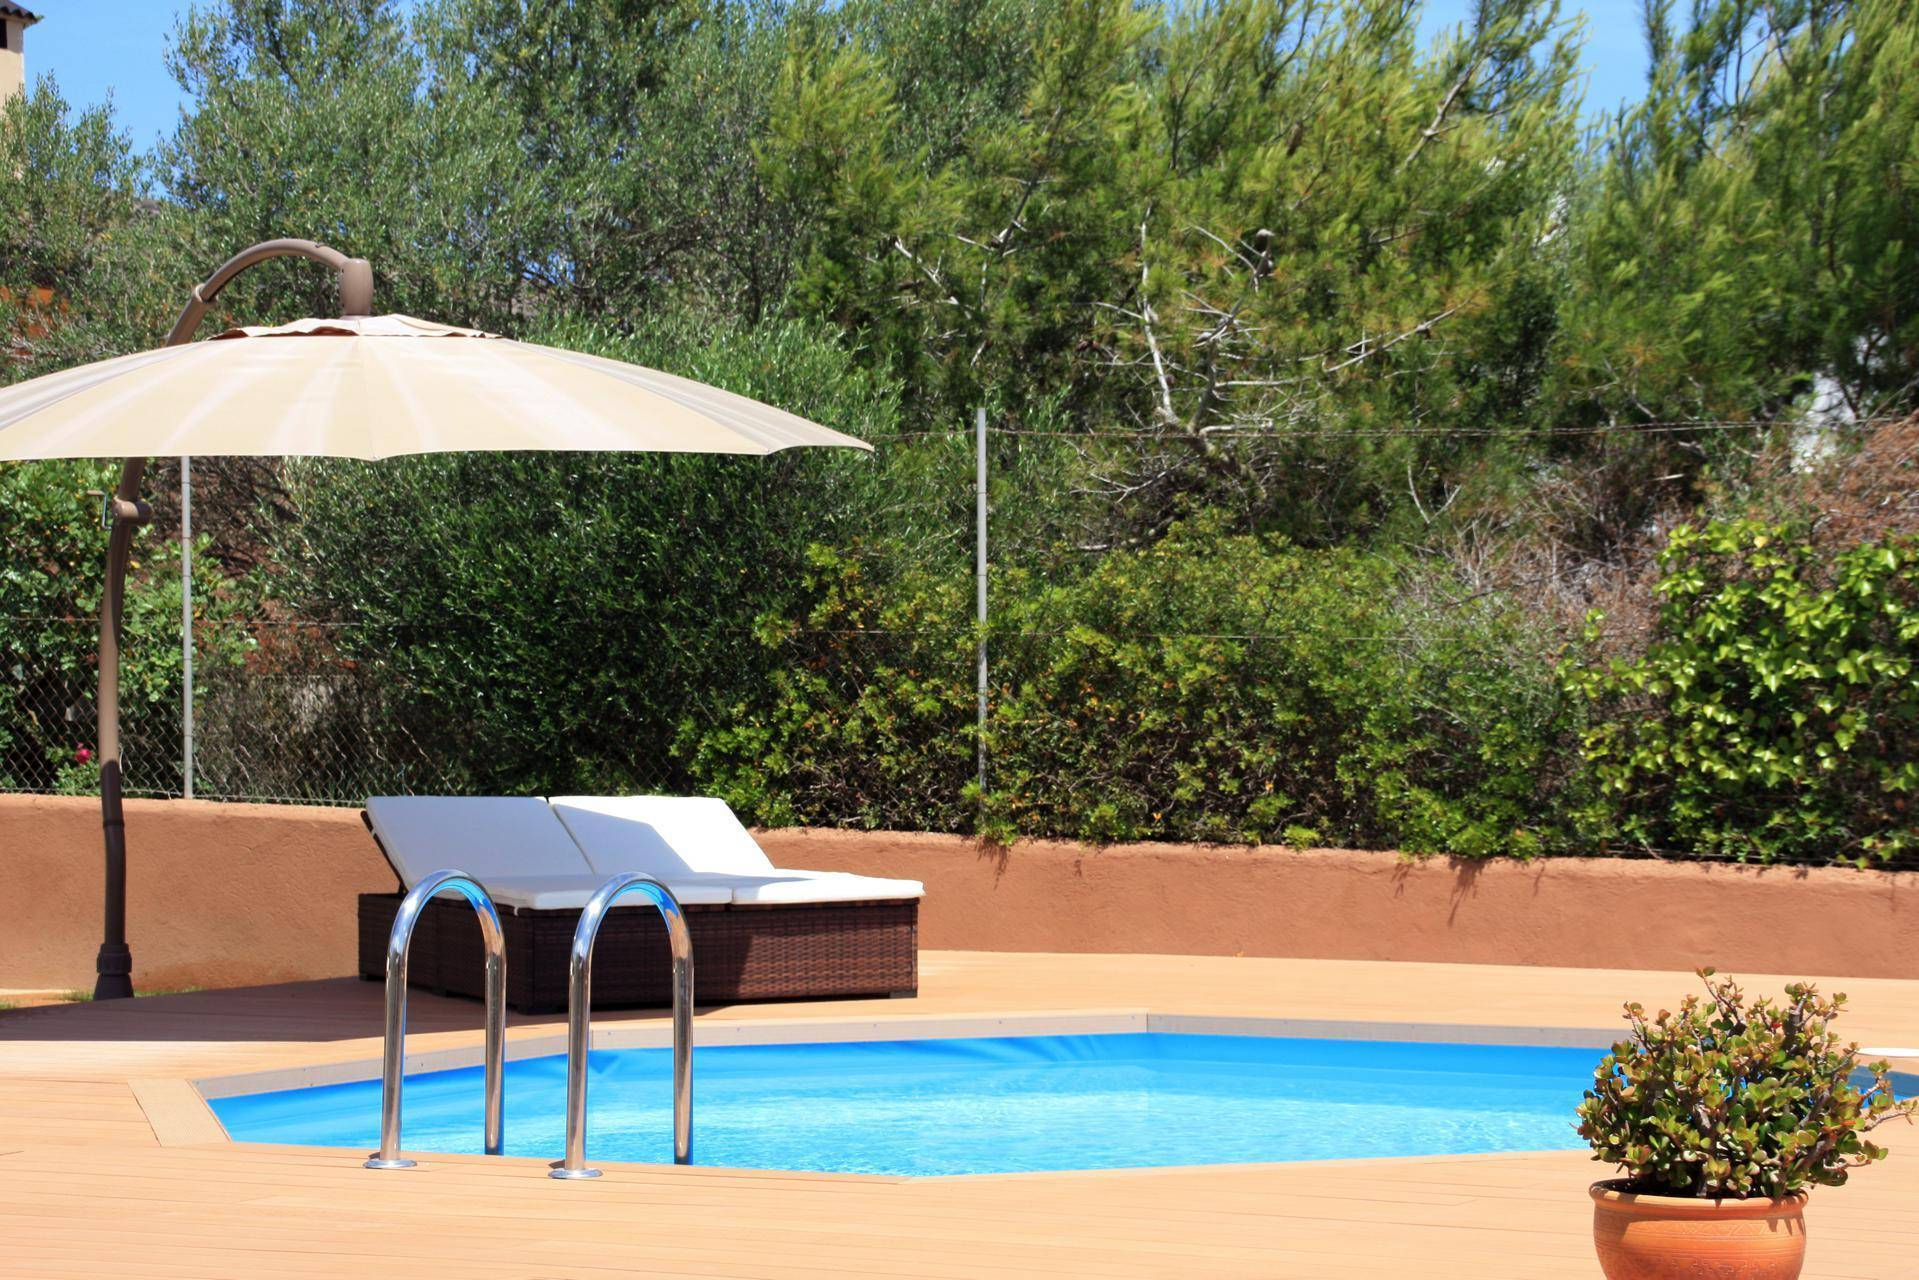 01-12 Small holiday home Mallorca south Bild 2